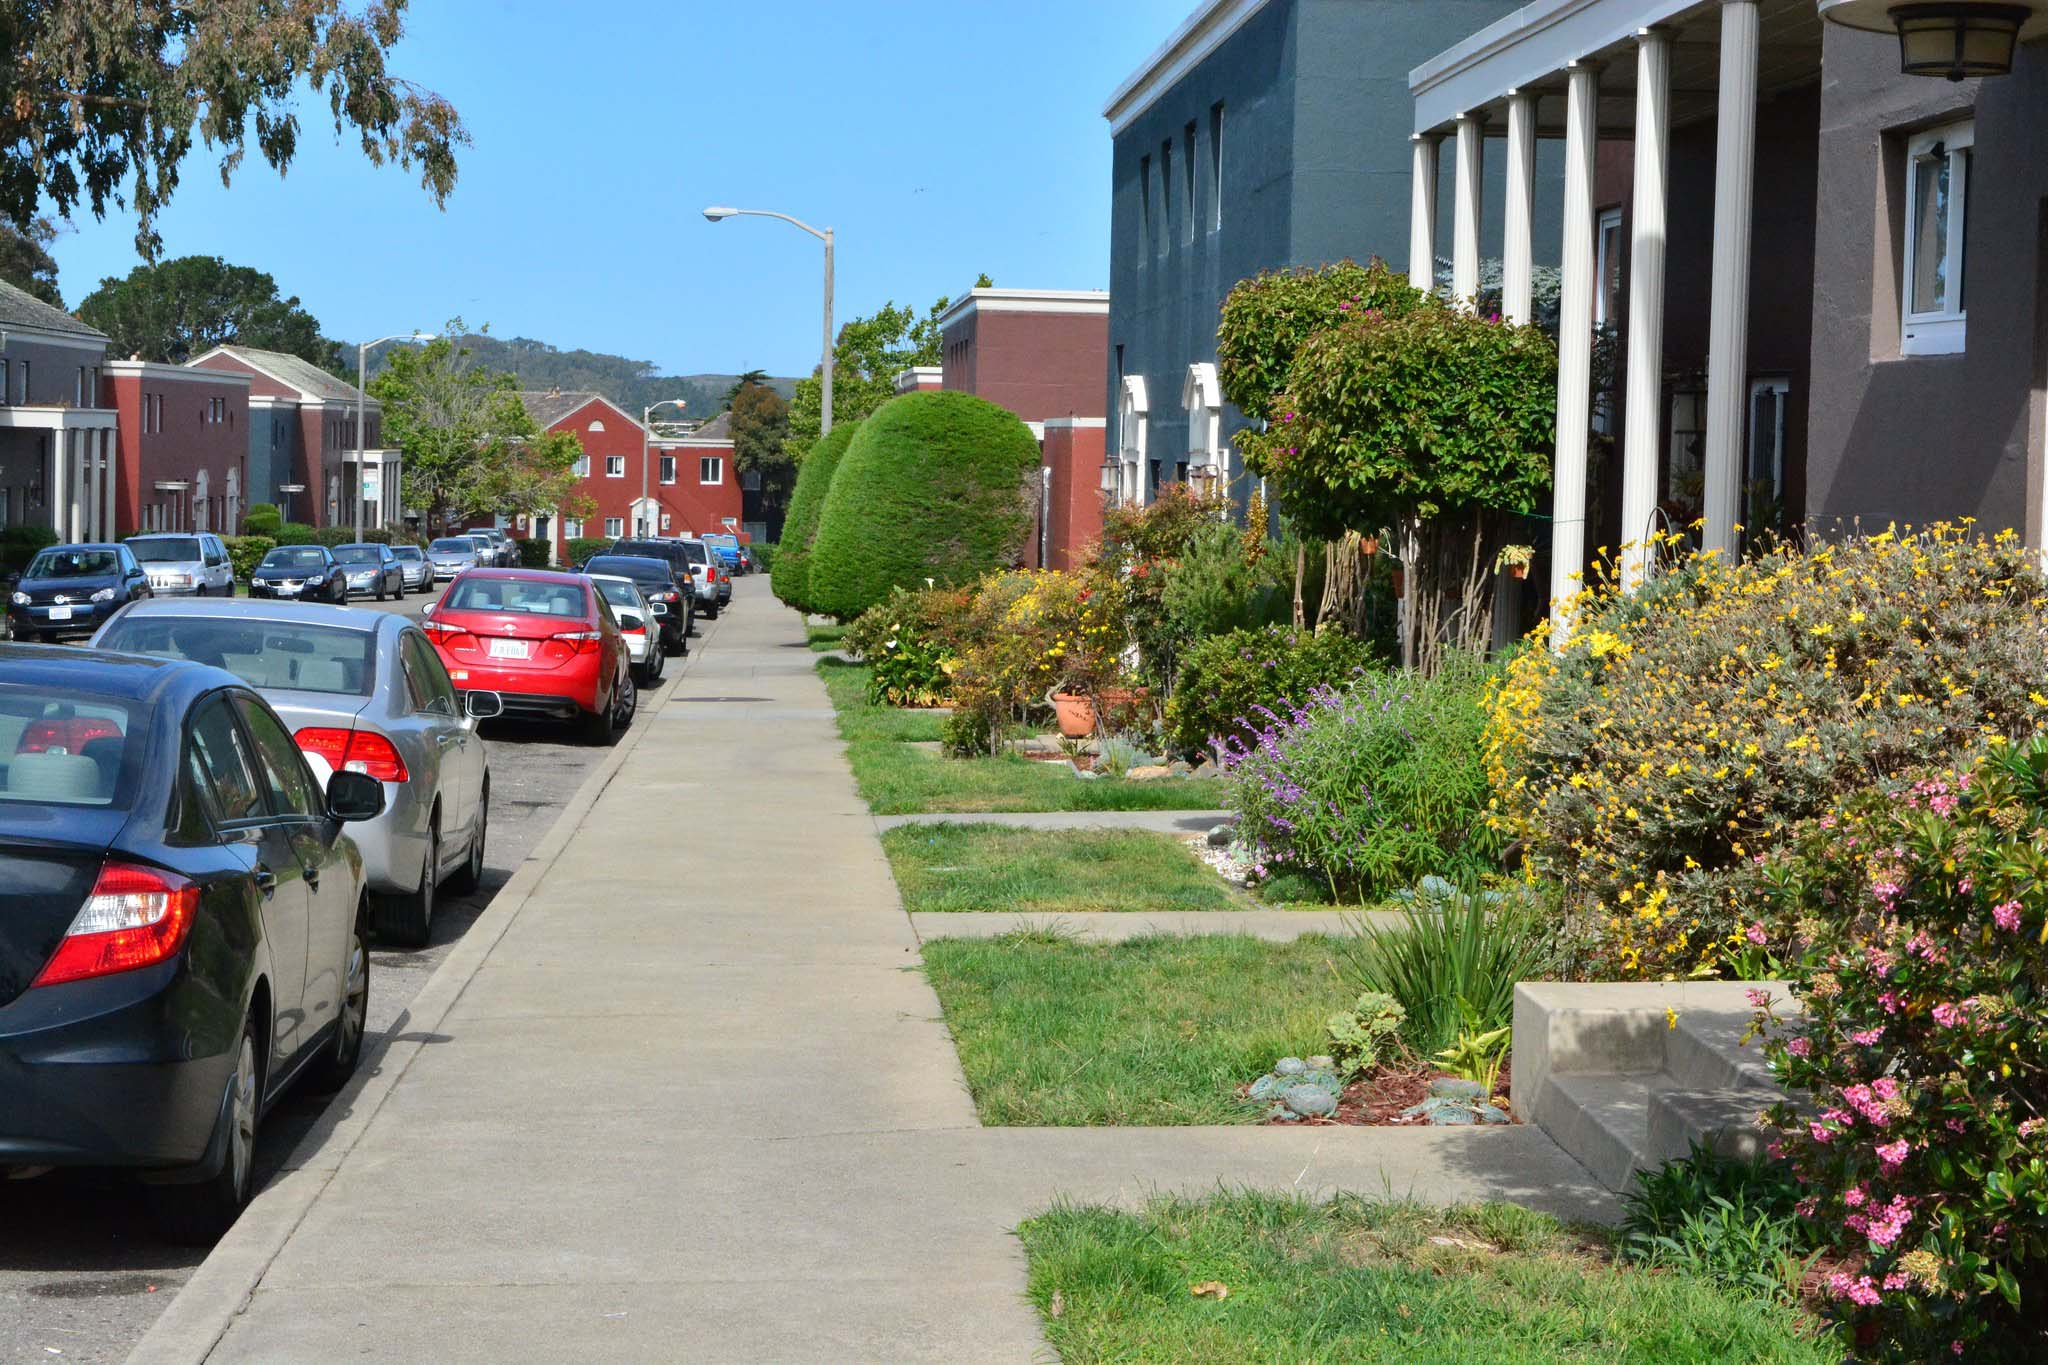 A sidewalk, homes, and cars in the Parkmerced development in California.